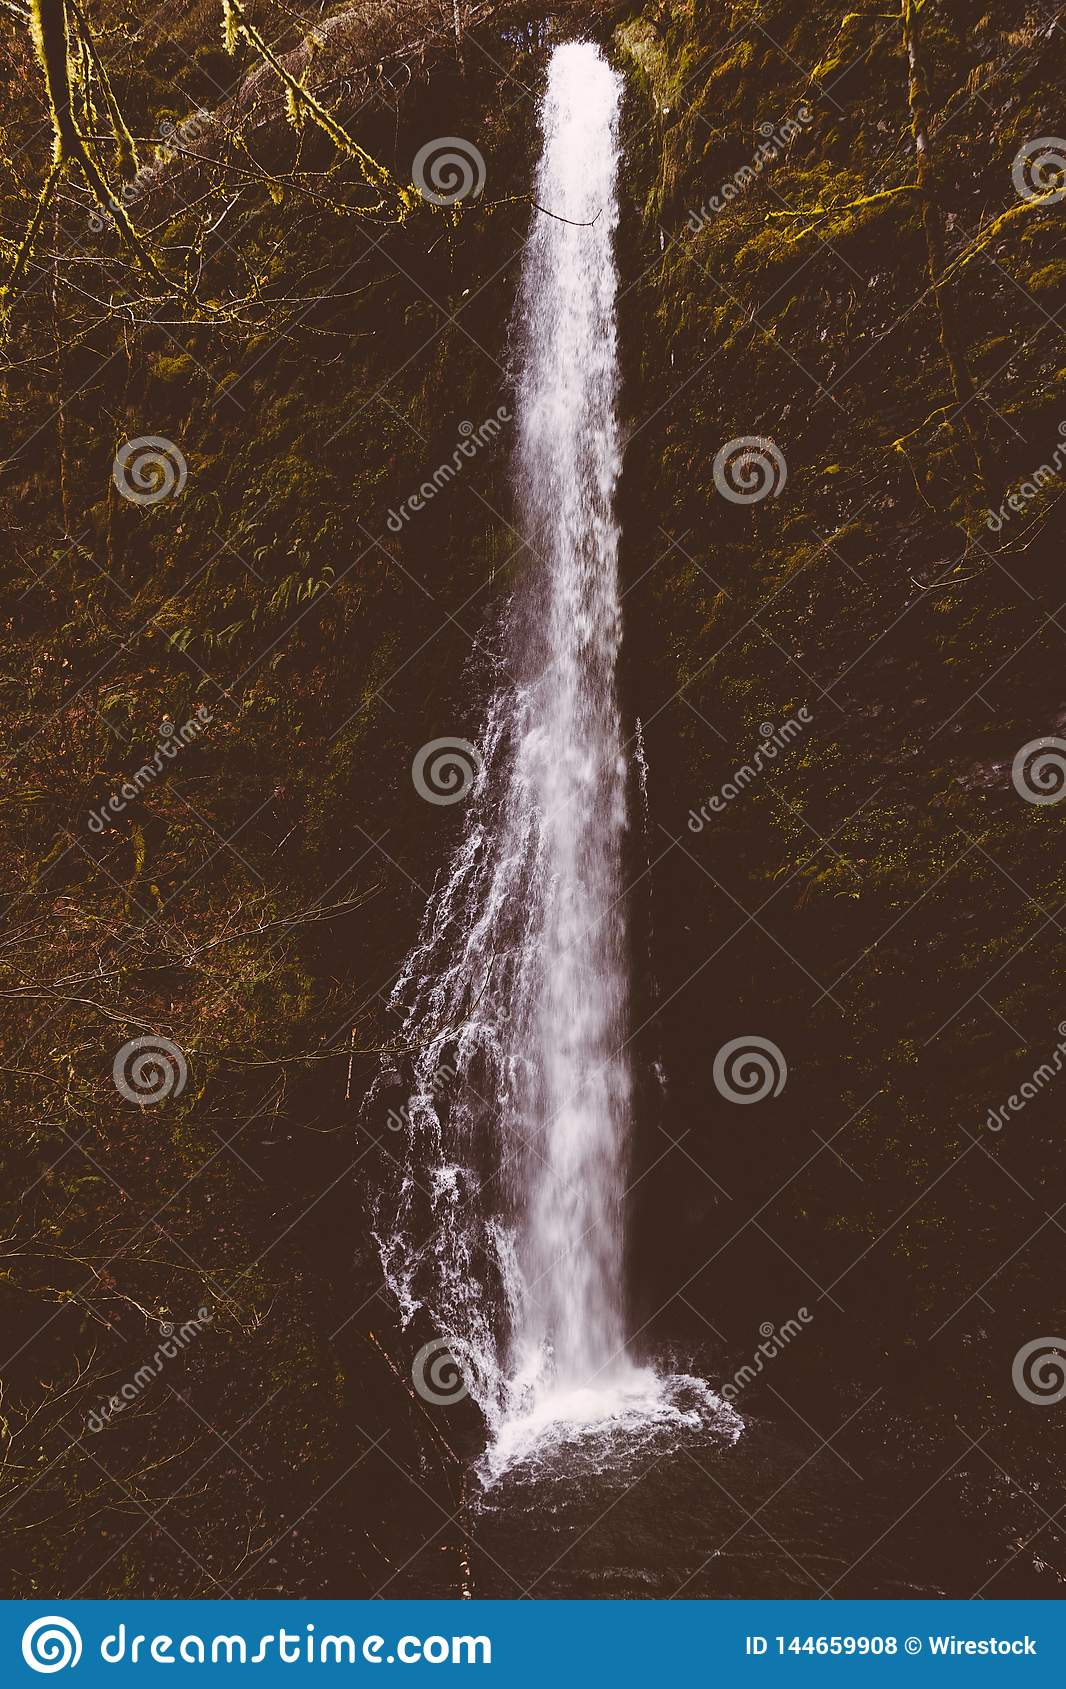 Beautiful shot of a waterfall in the forest surrounded by tall trees